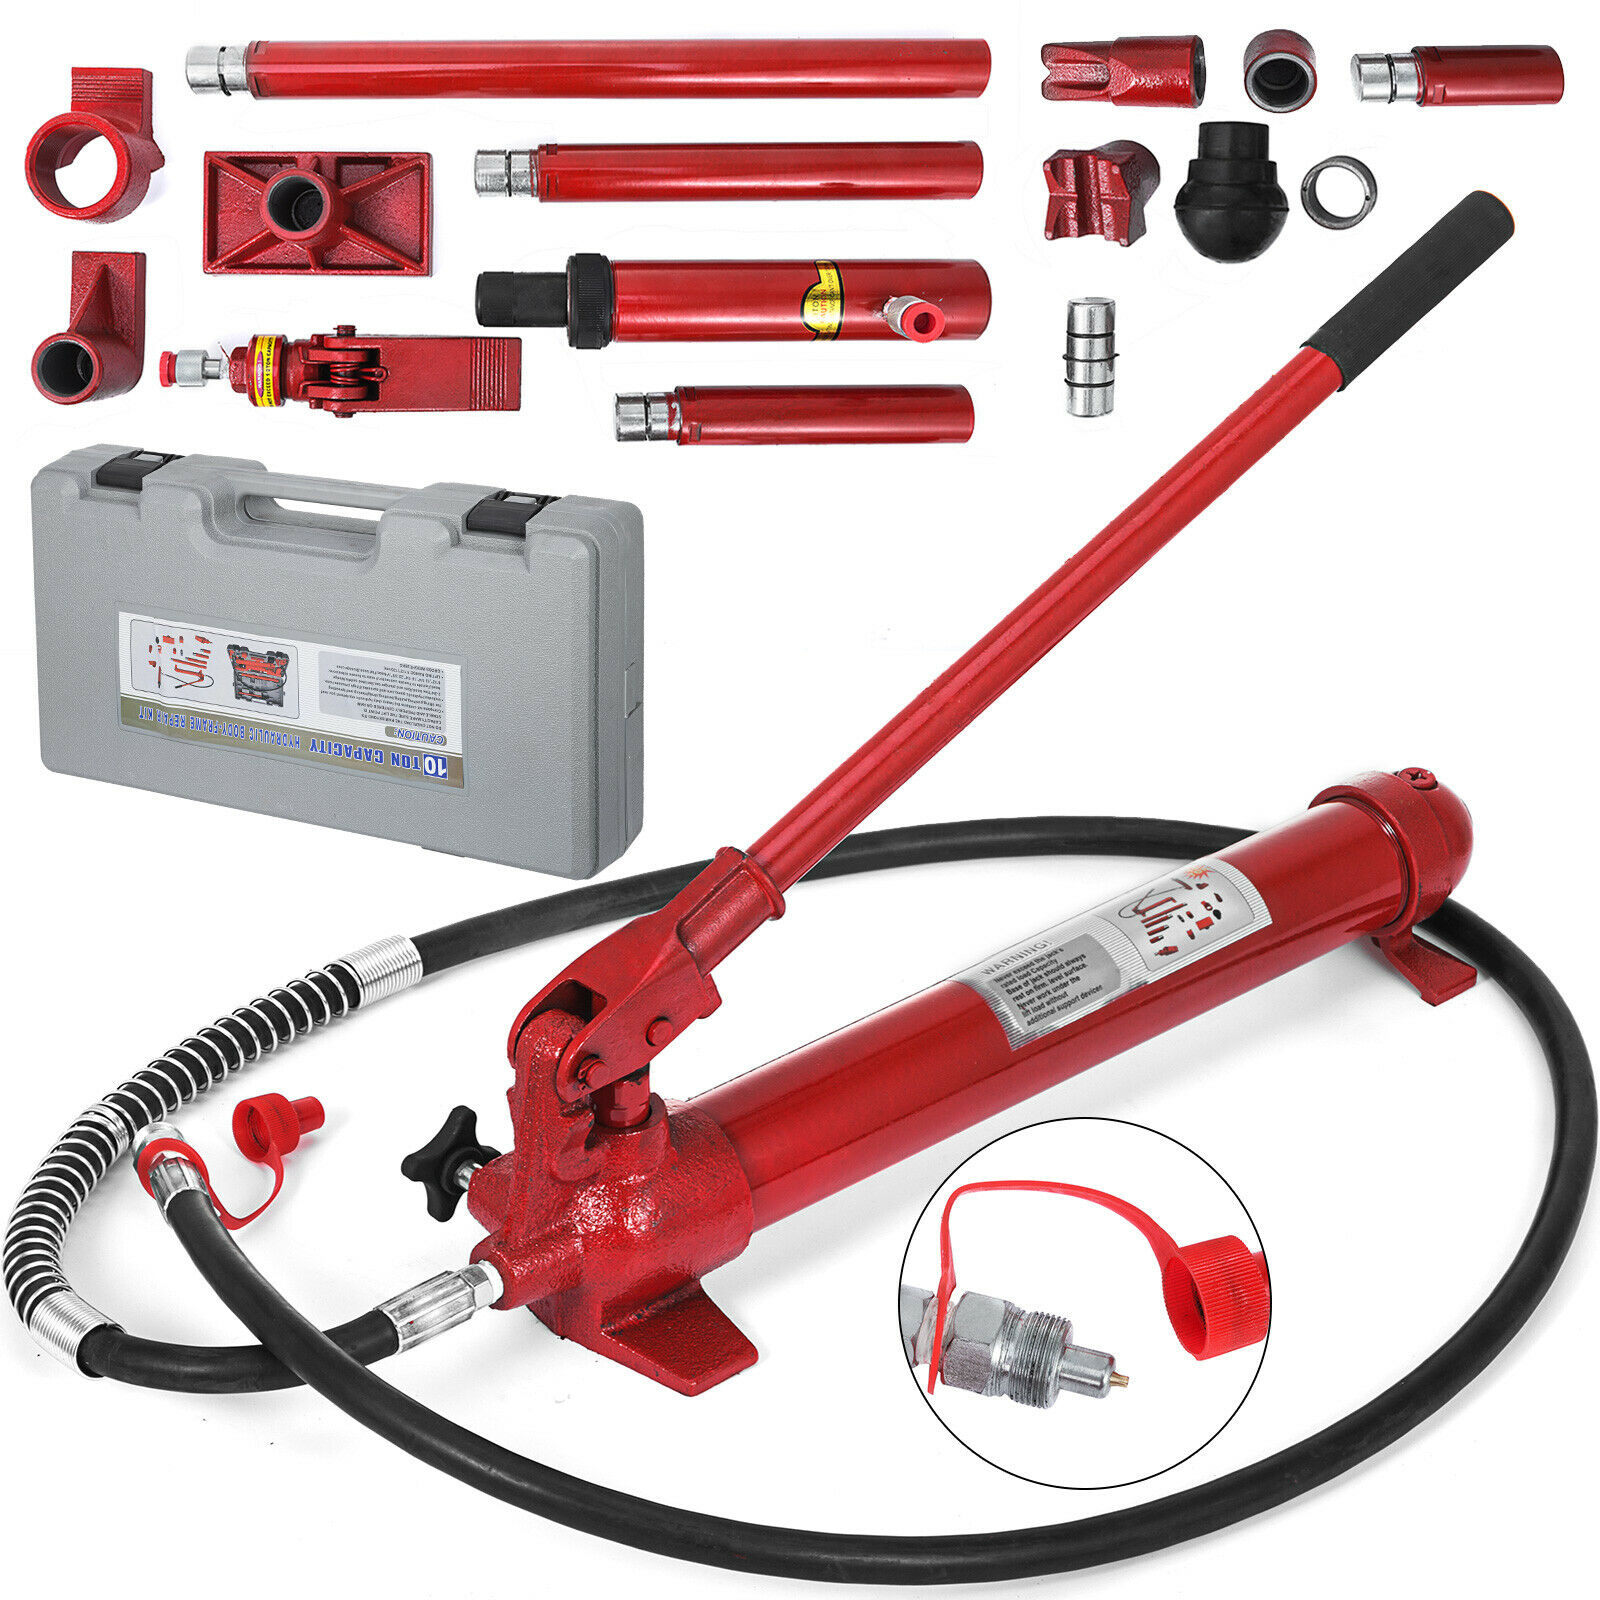 Hydraulic Jack Kit 10 Ton Portable Power Hydraulic Jack Body Frame Repair Kit